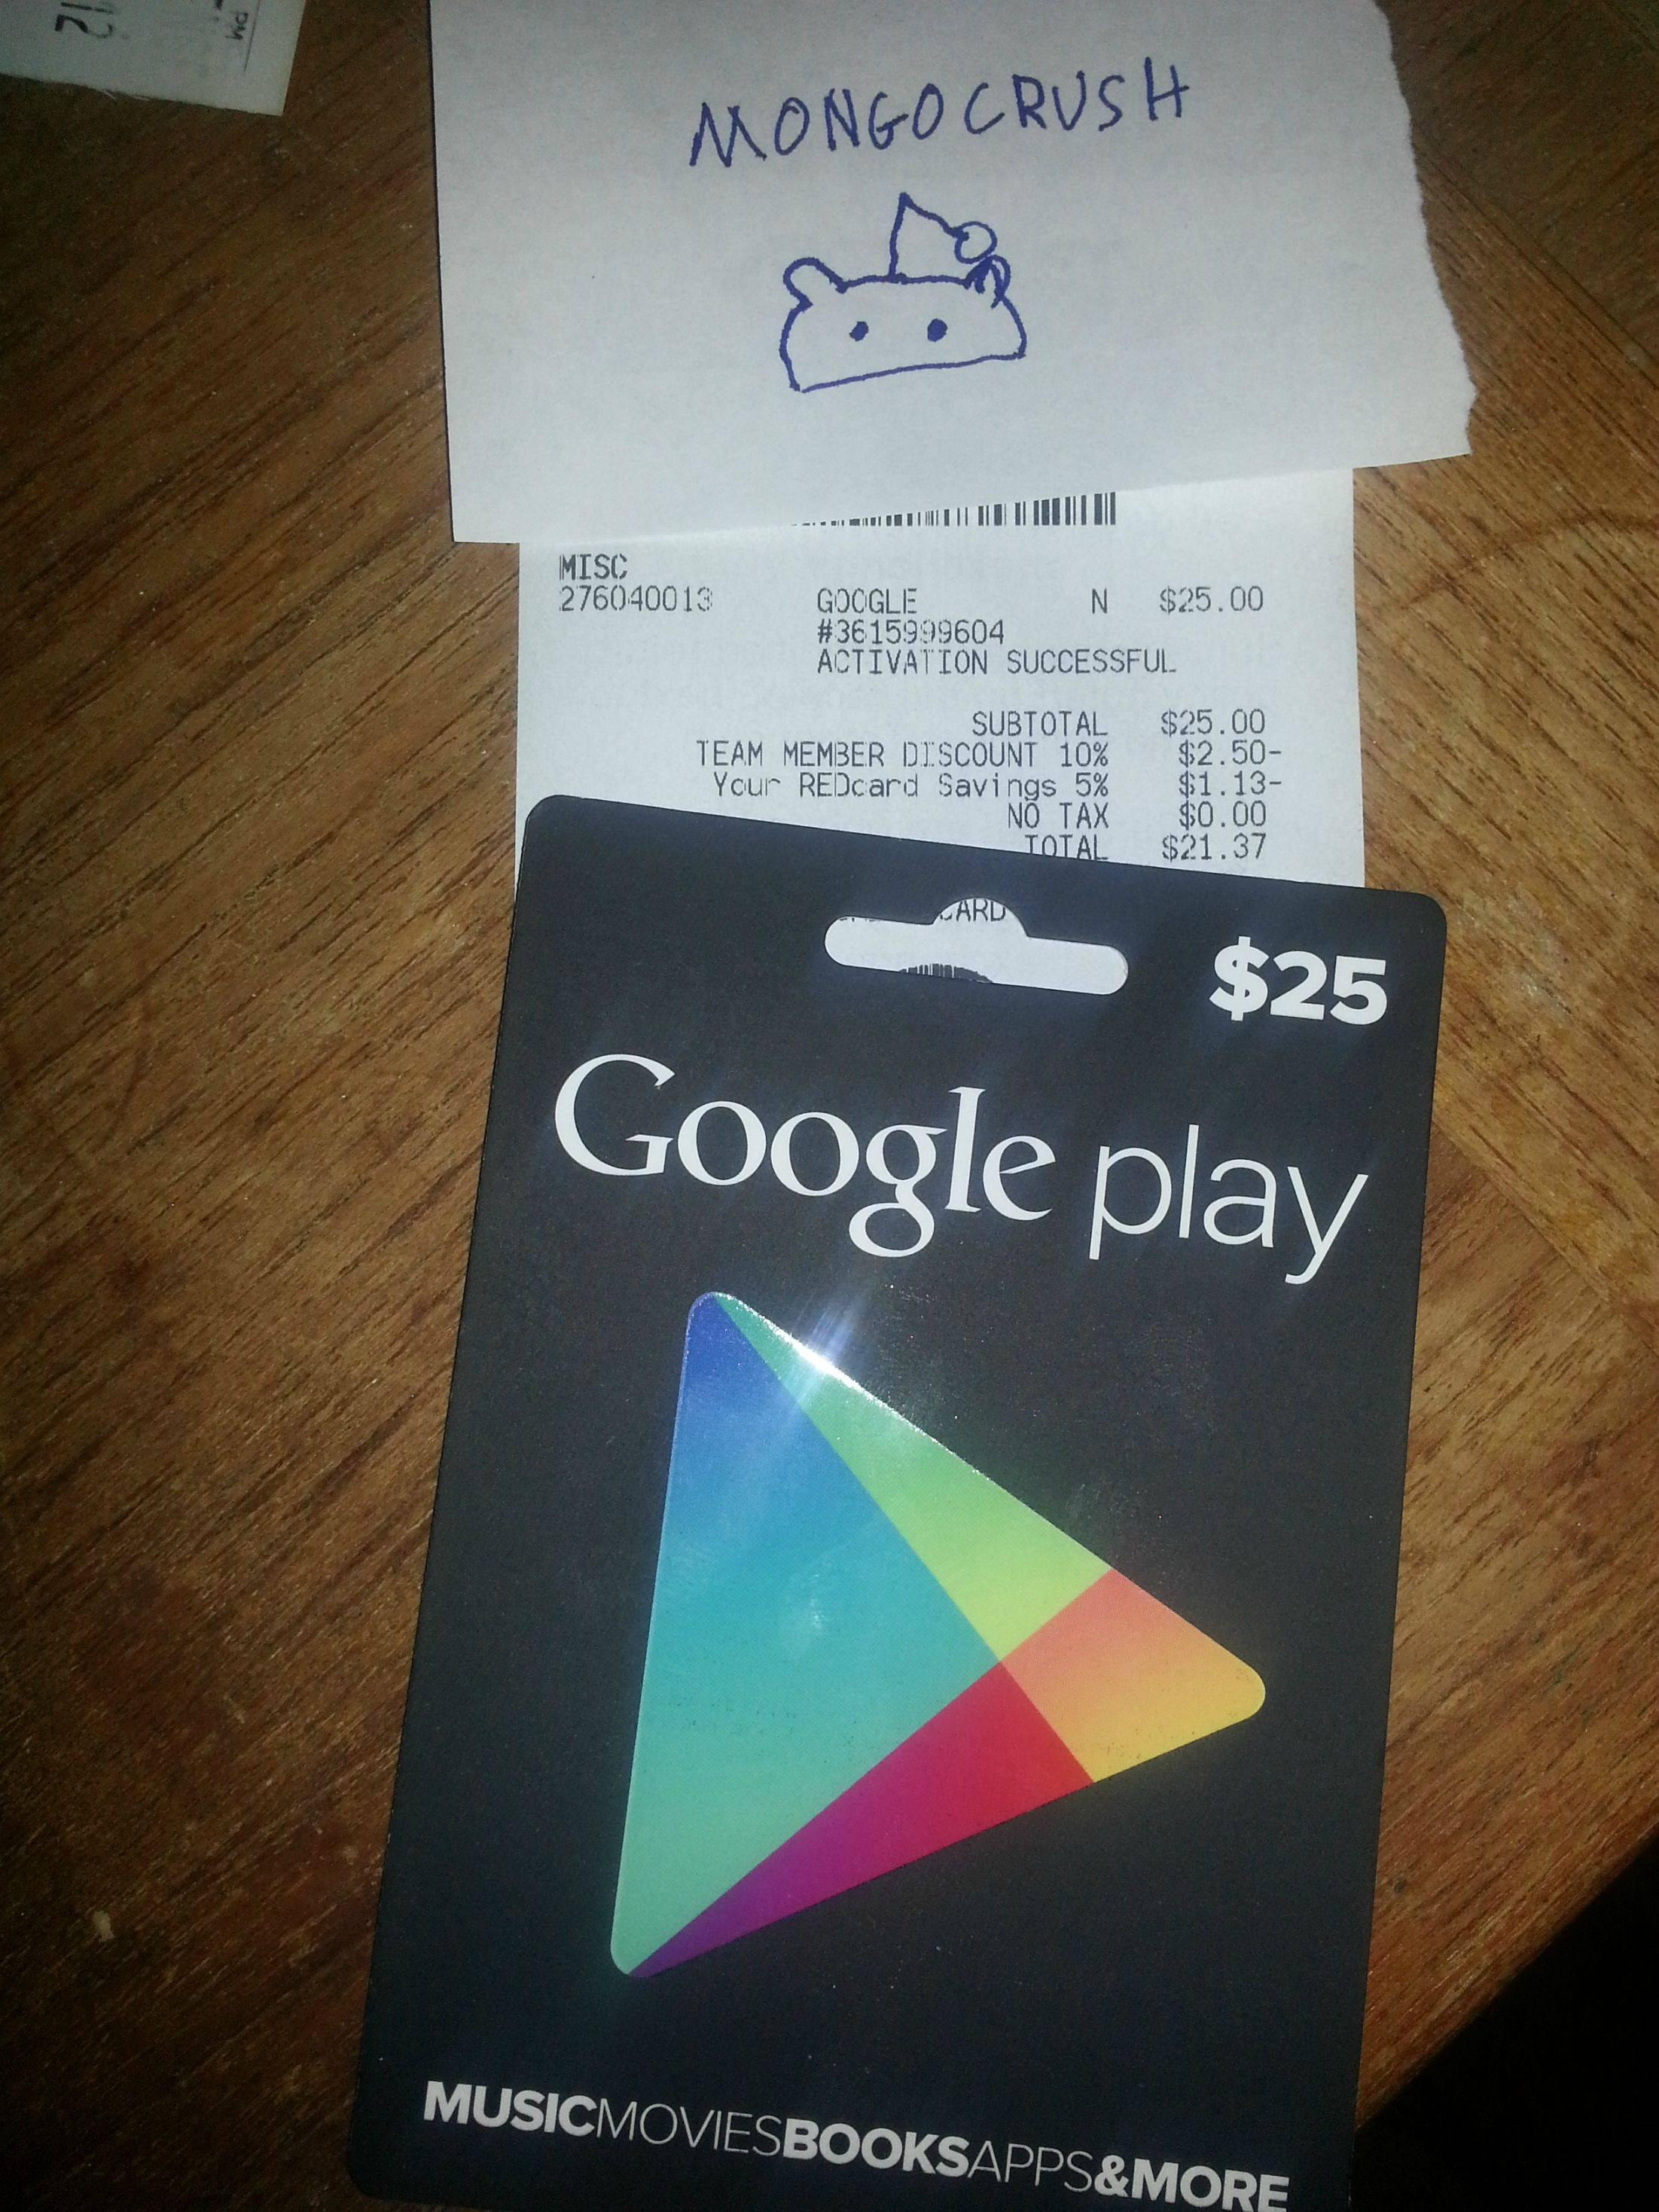 Google Play Store gift card allegedly purchased at store